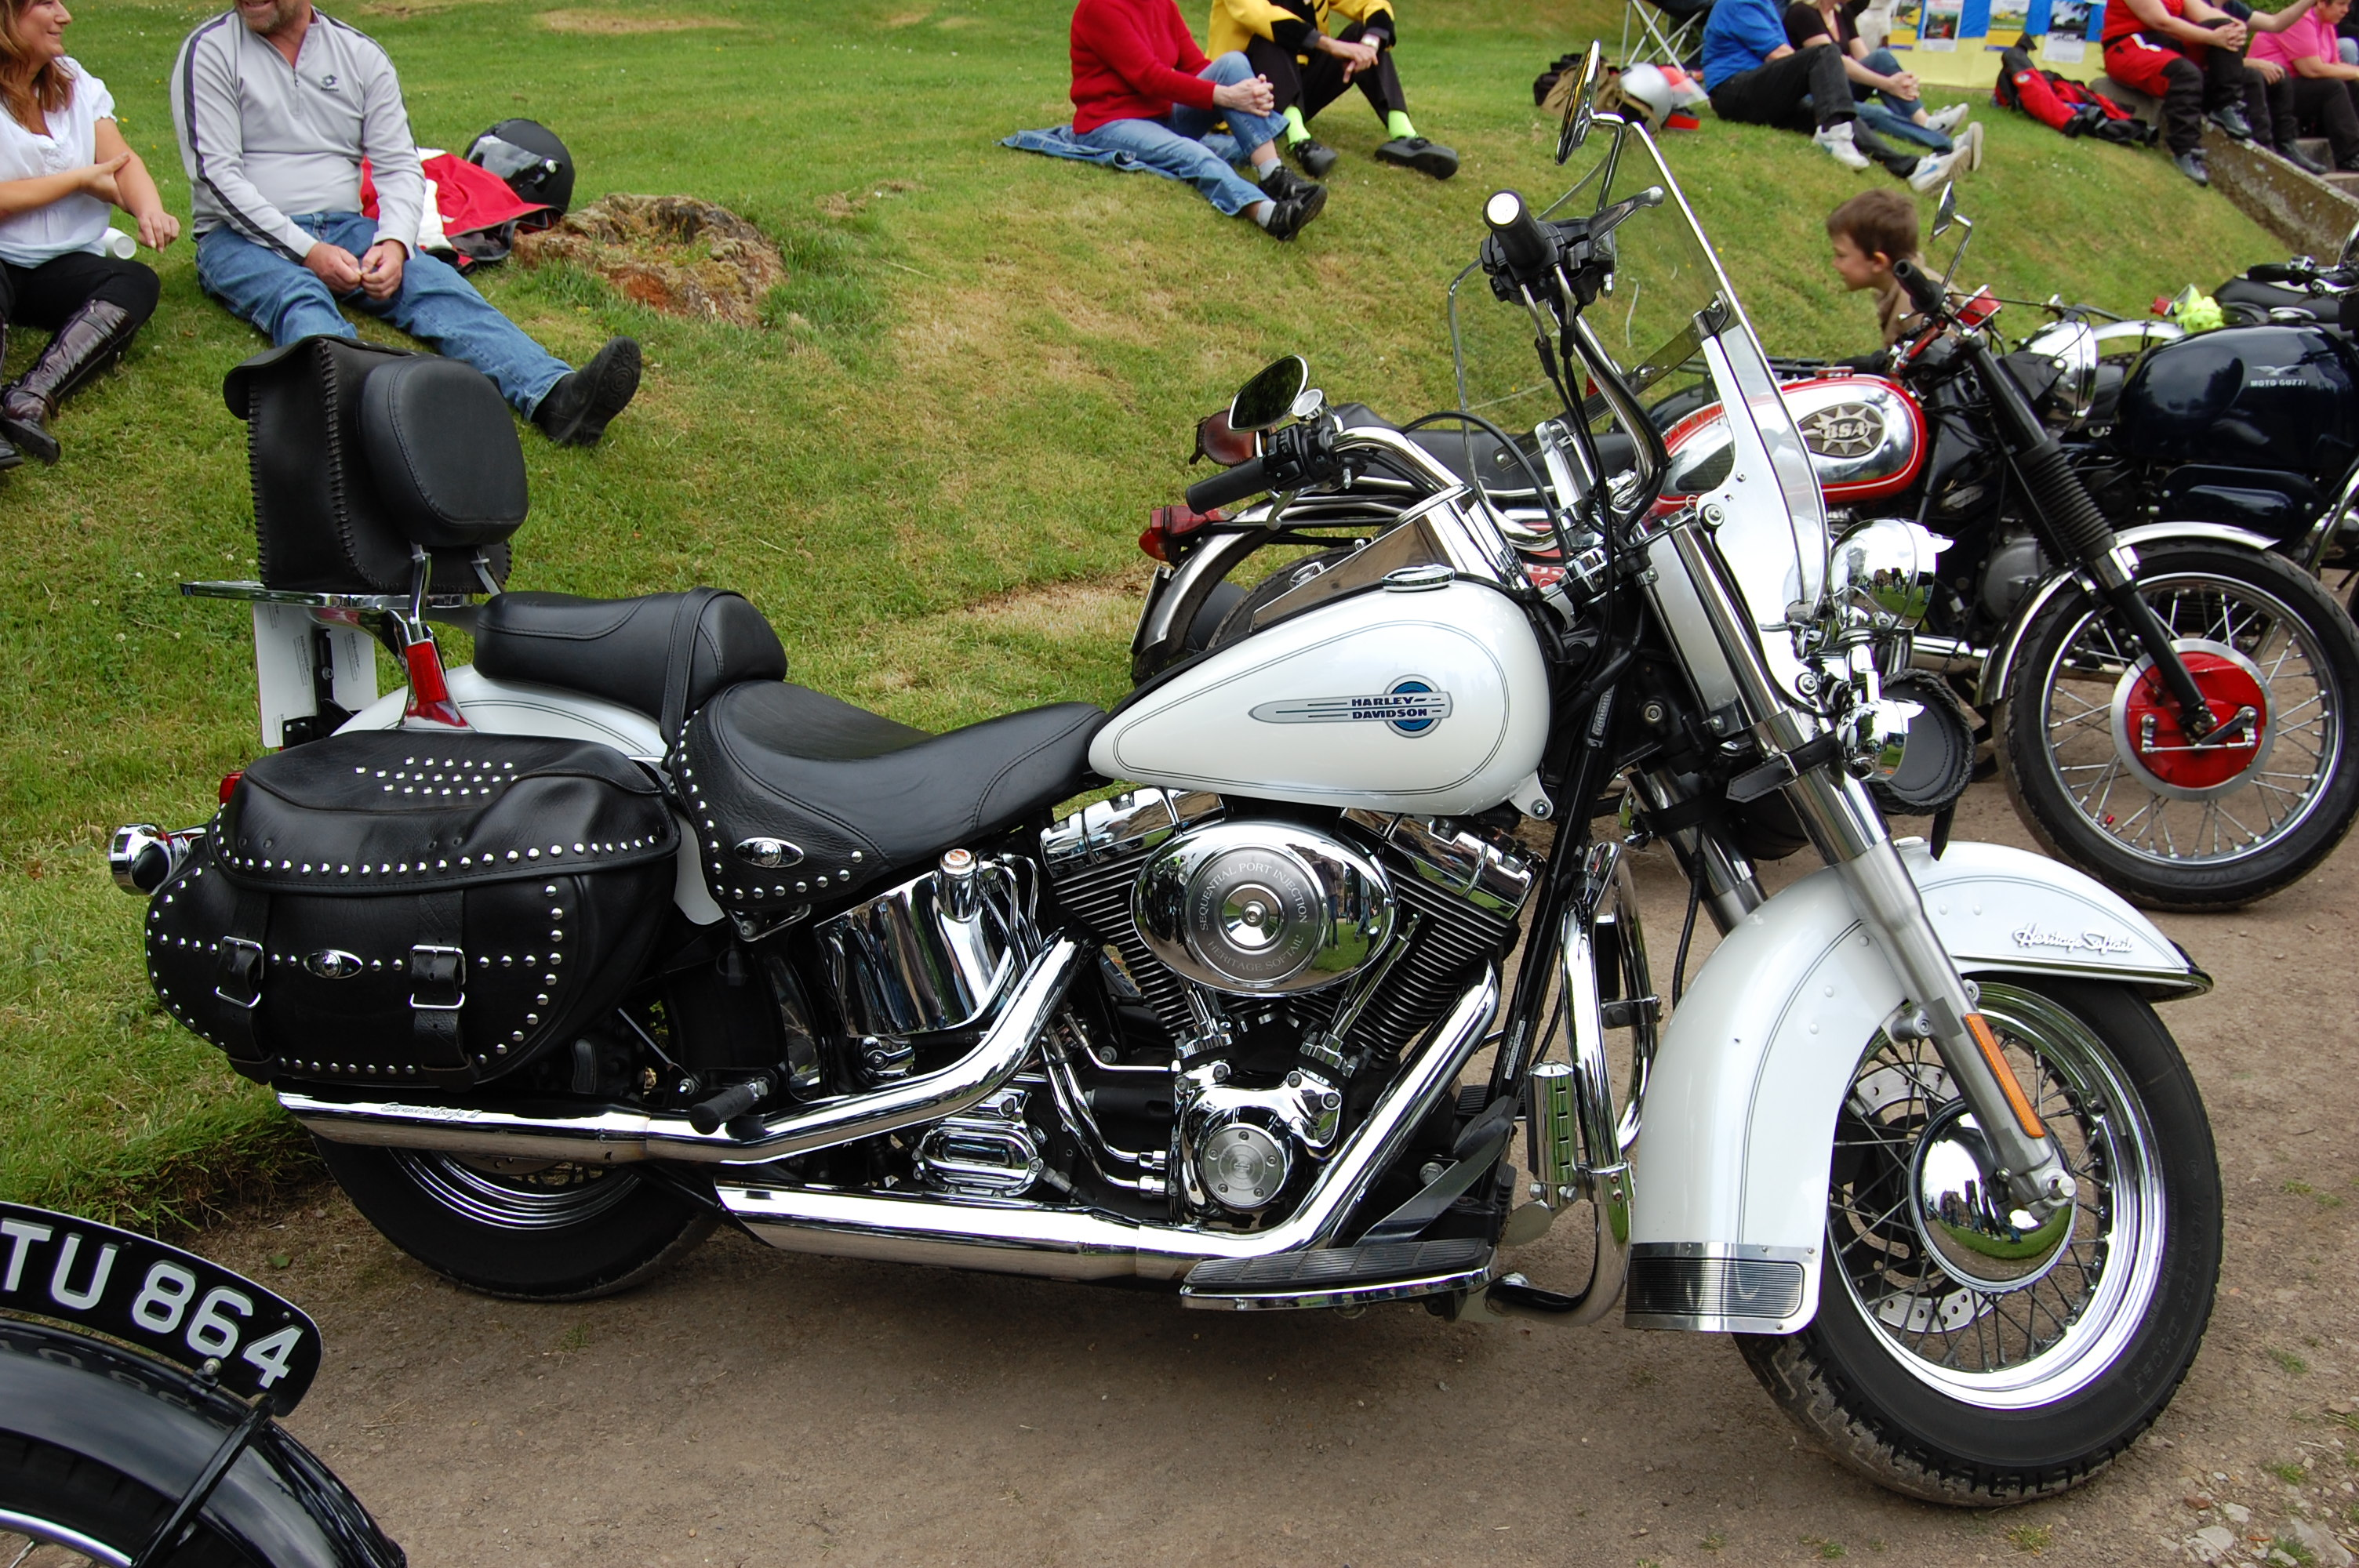 File flickr ronsaunders47 harley davidson Hd usa